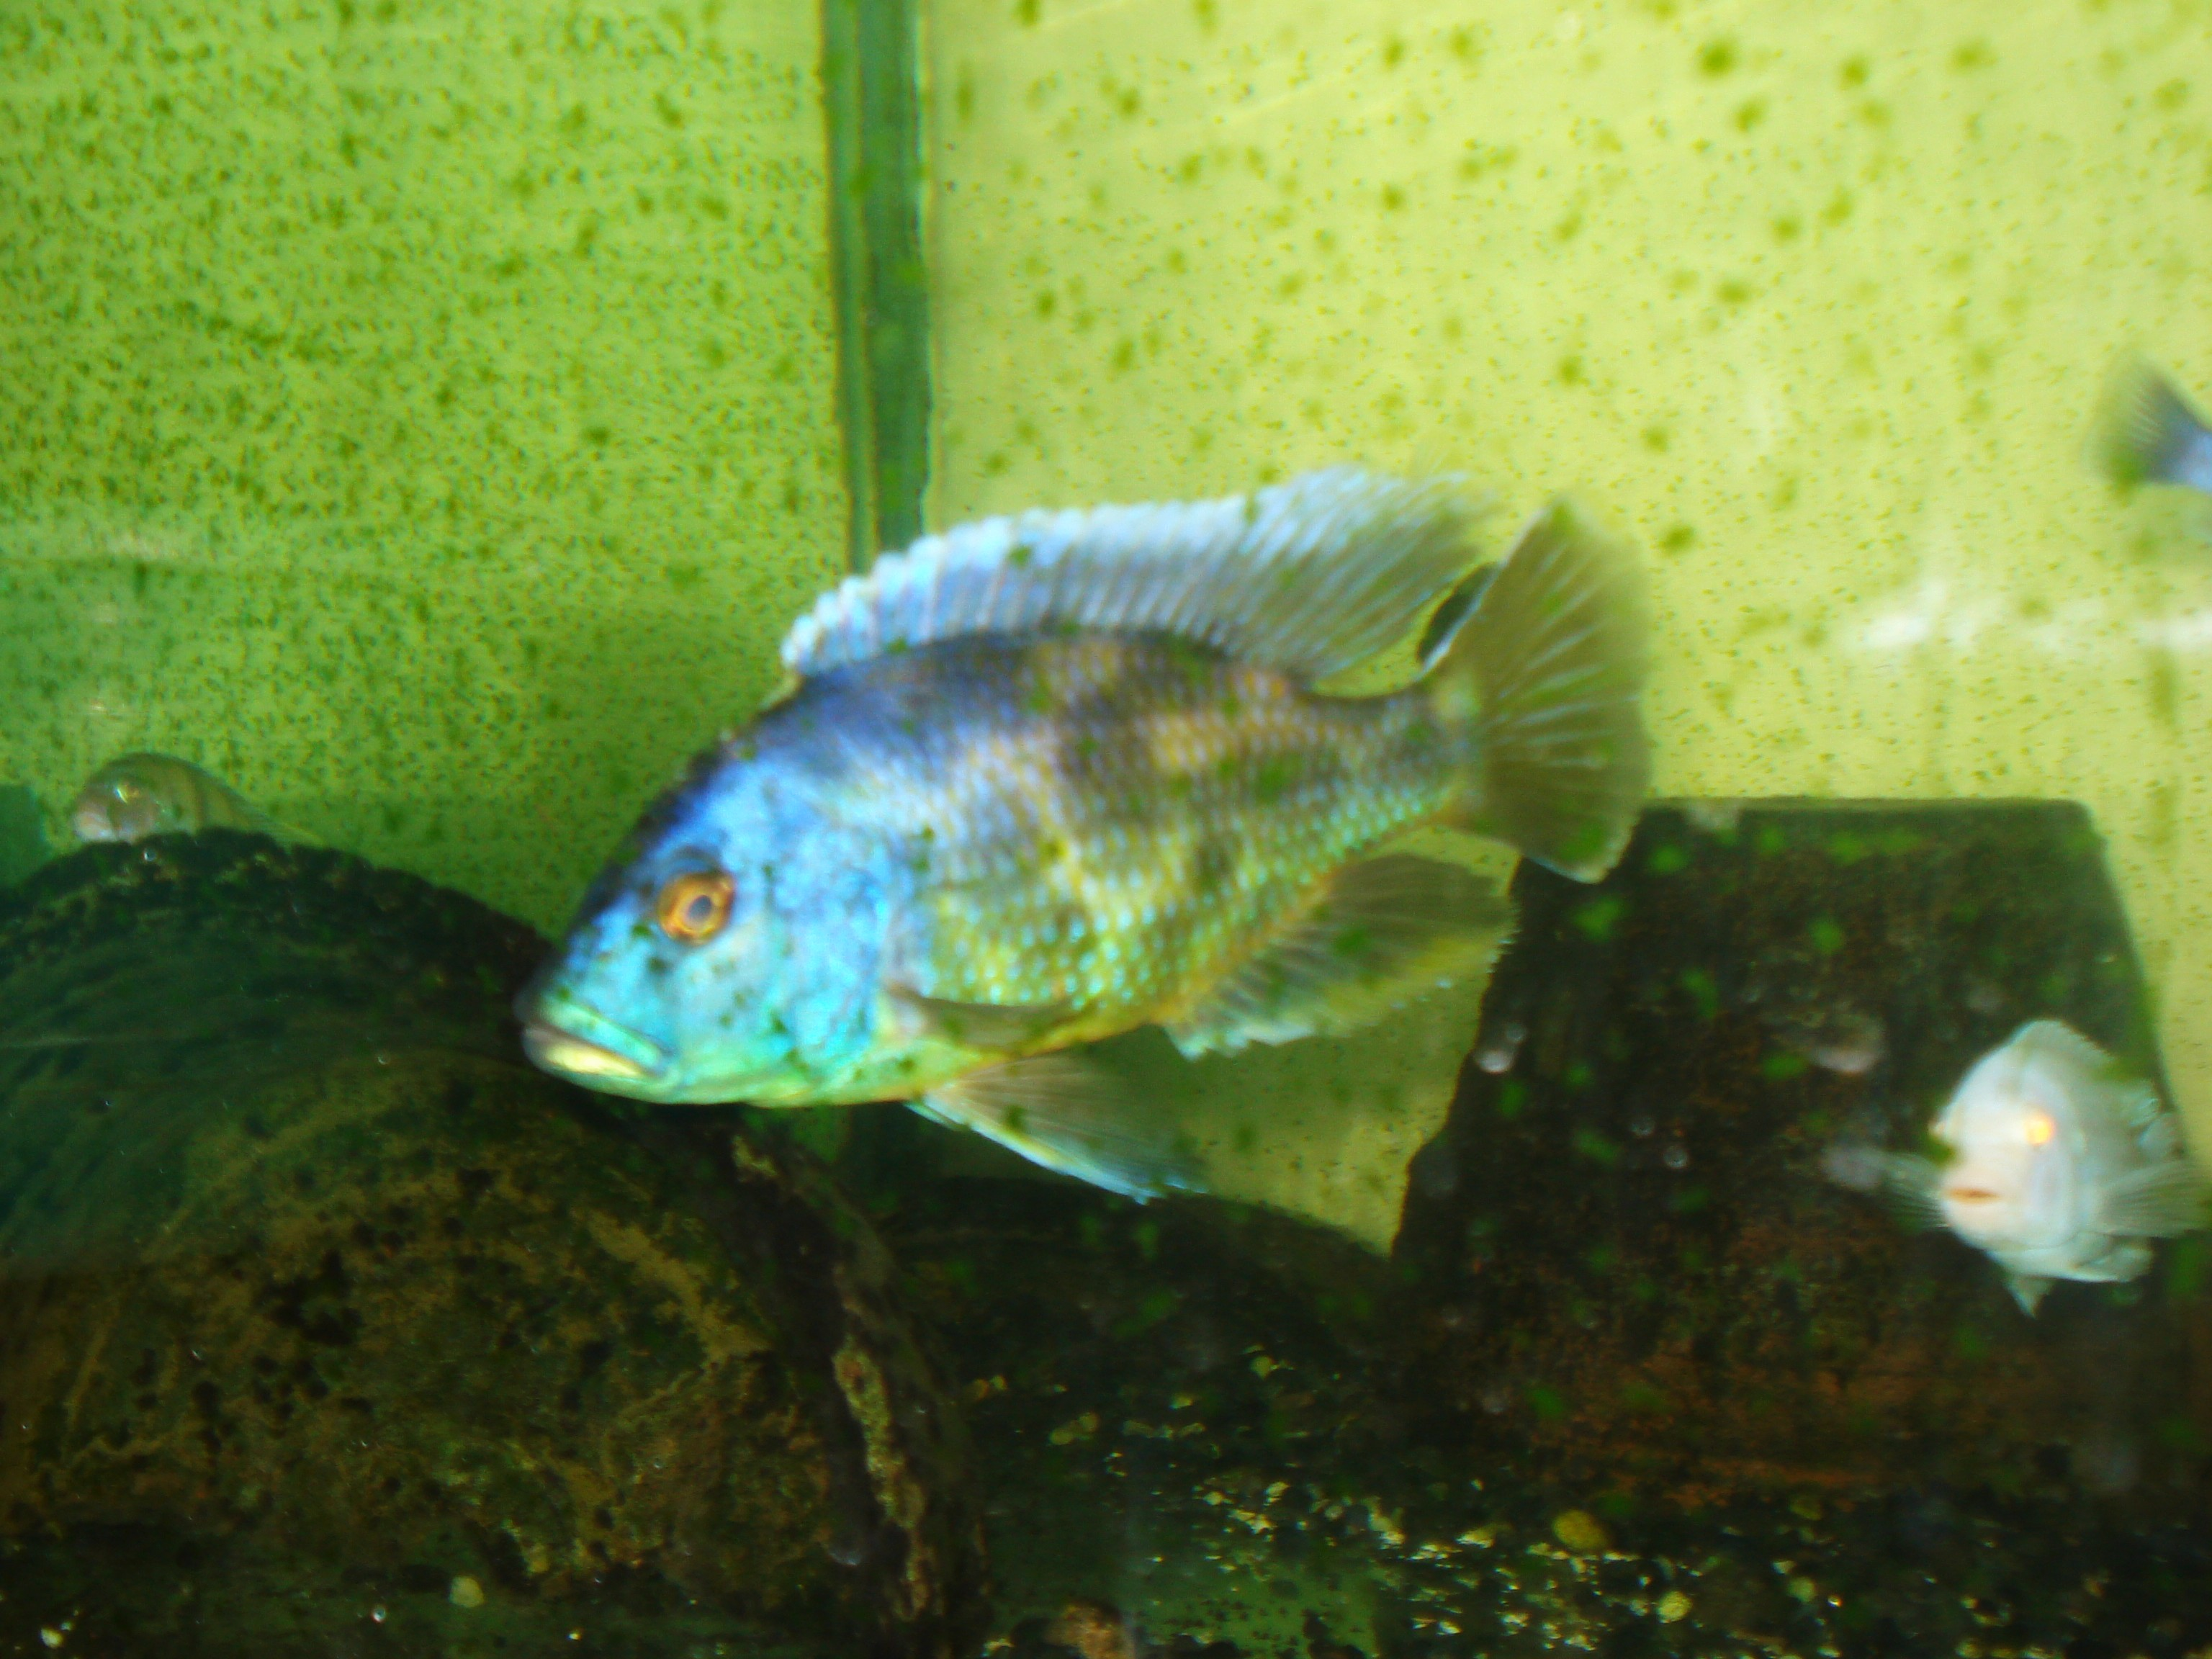 Biggest African Cichlid In My Tank